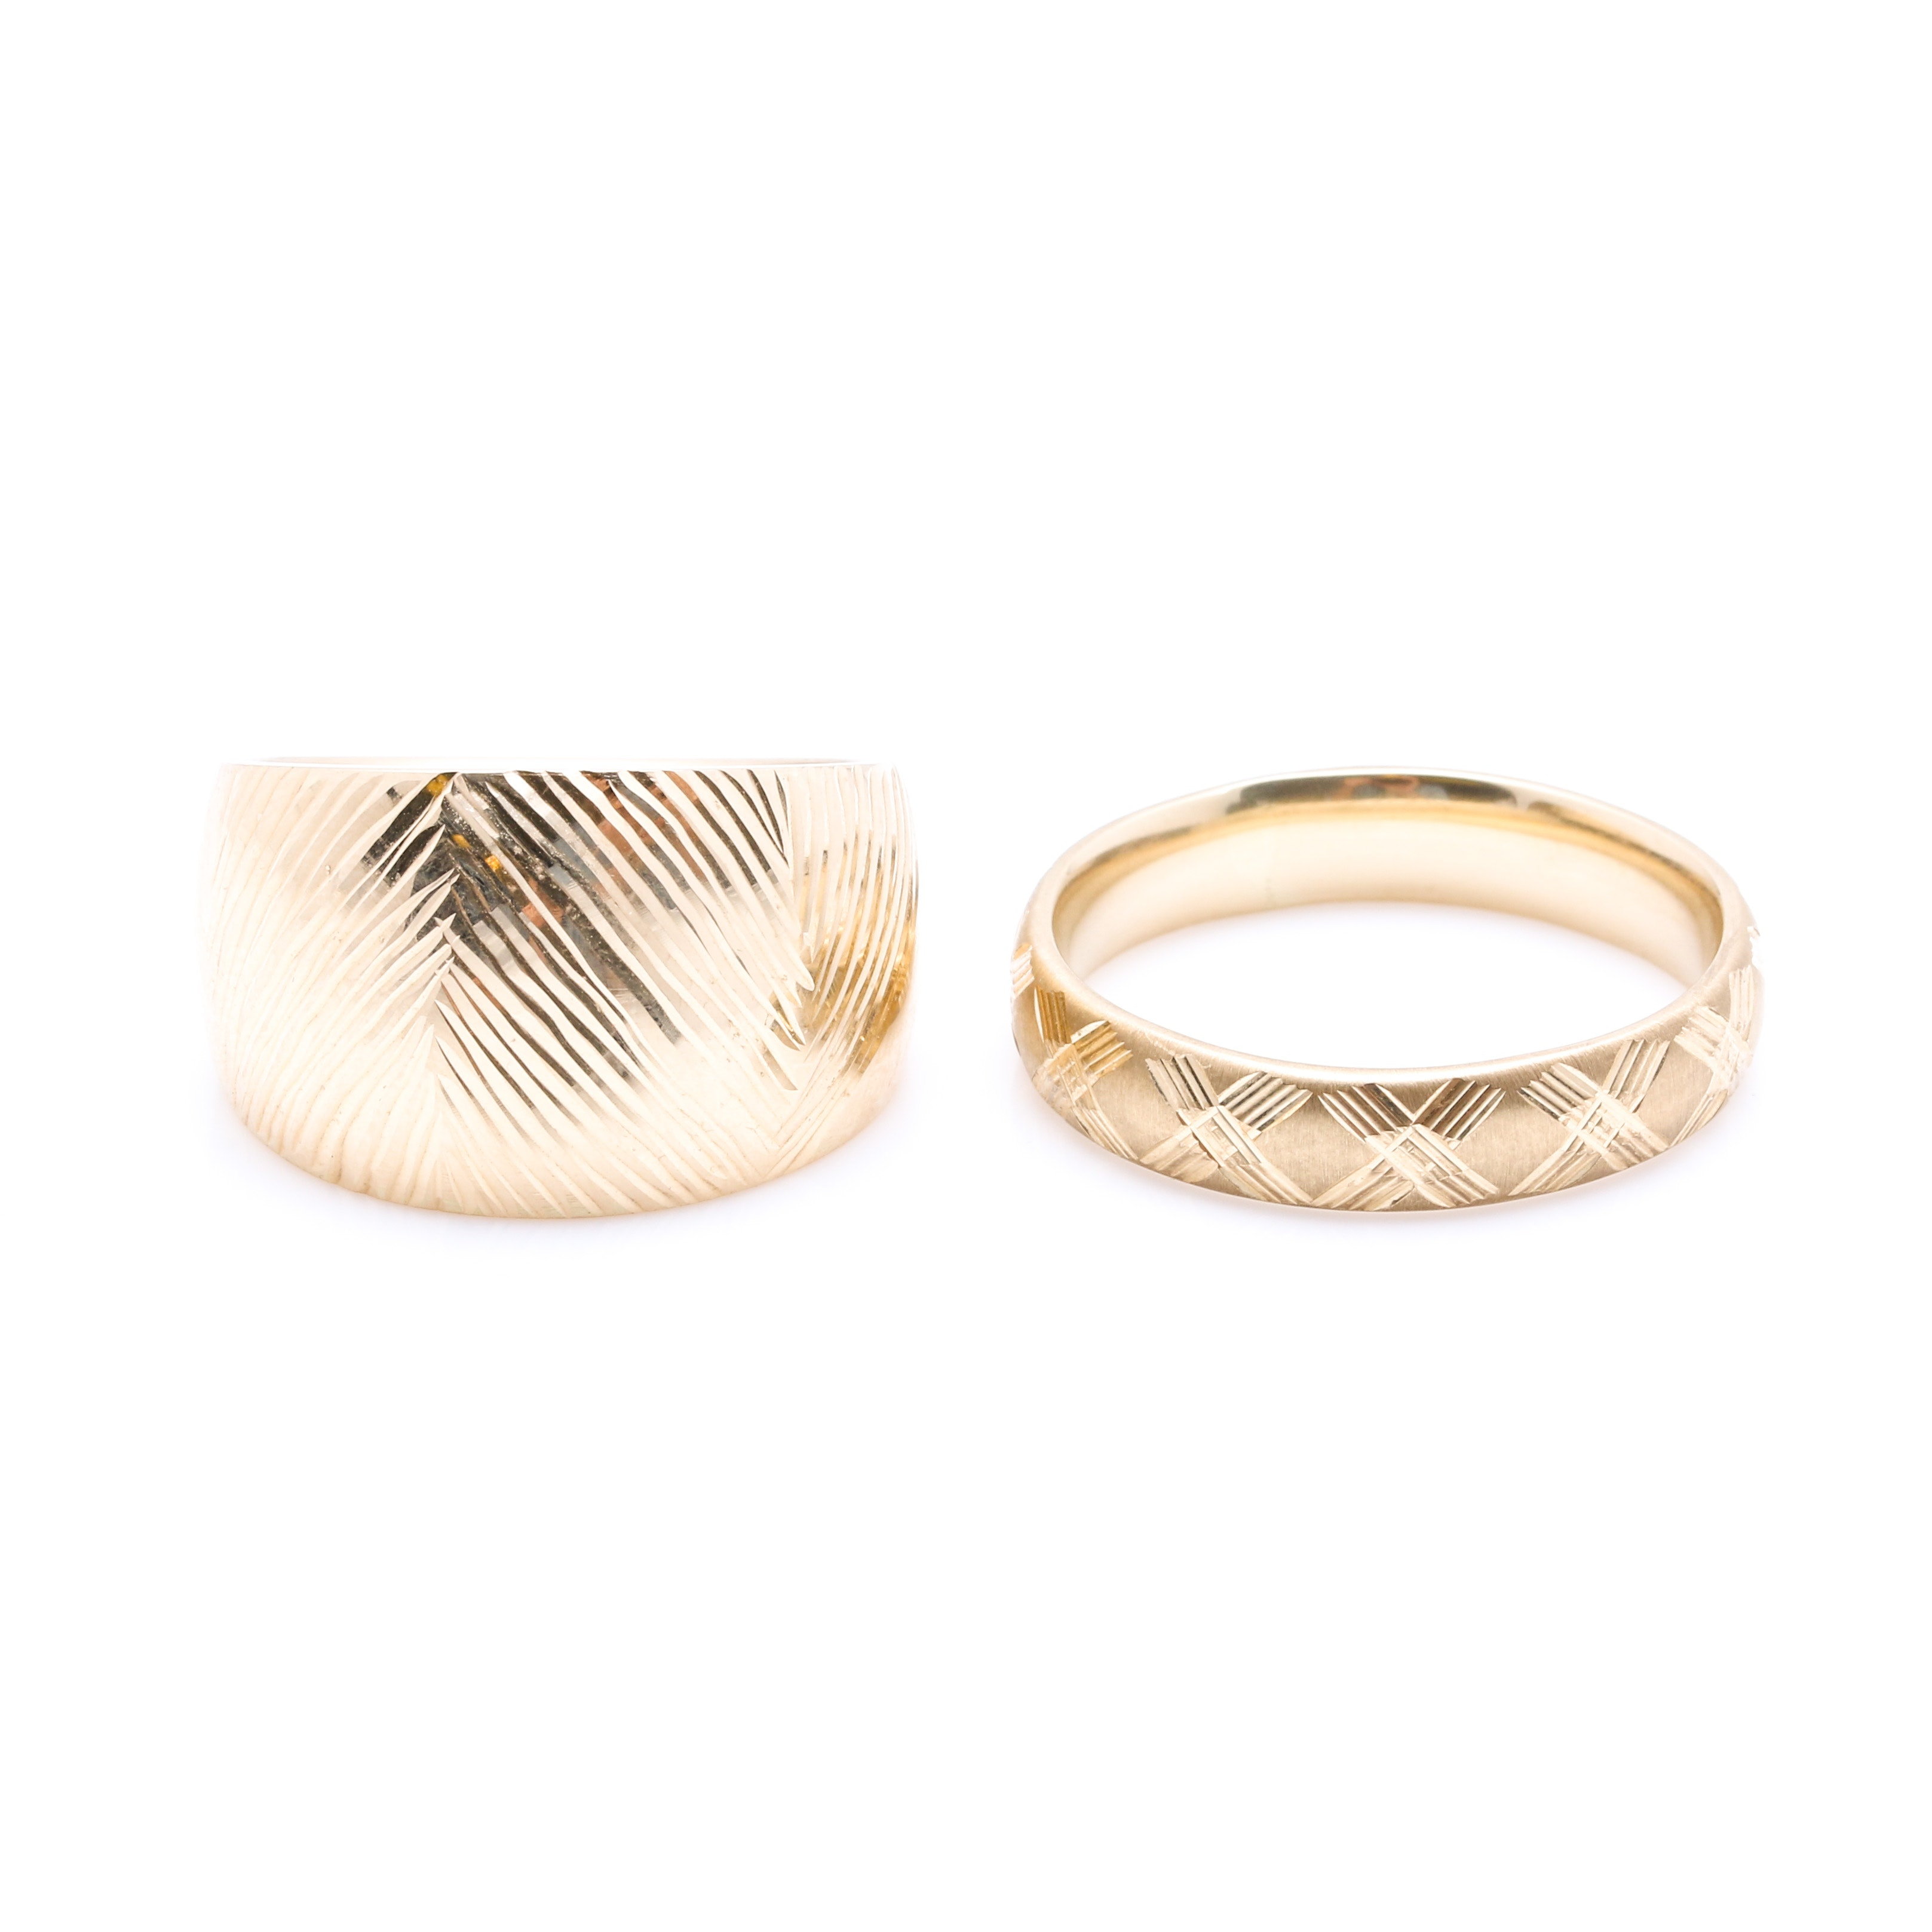 Pair of 14K Yellow Gold Textured Rings including Milor